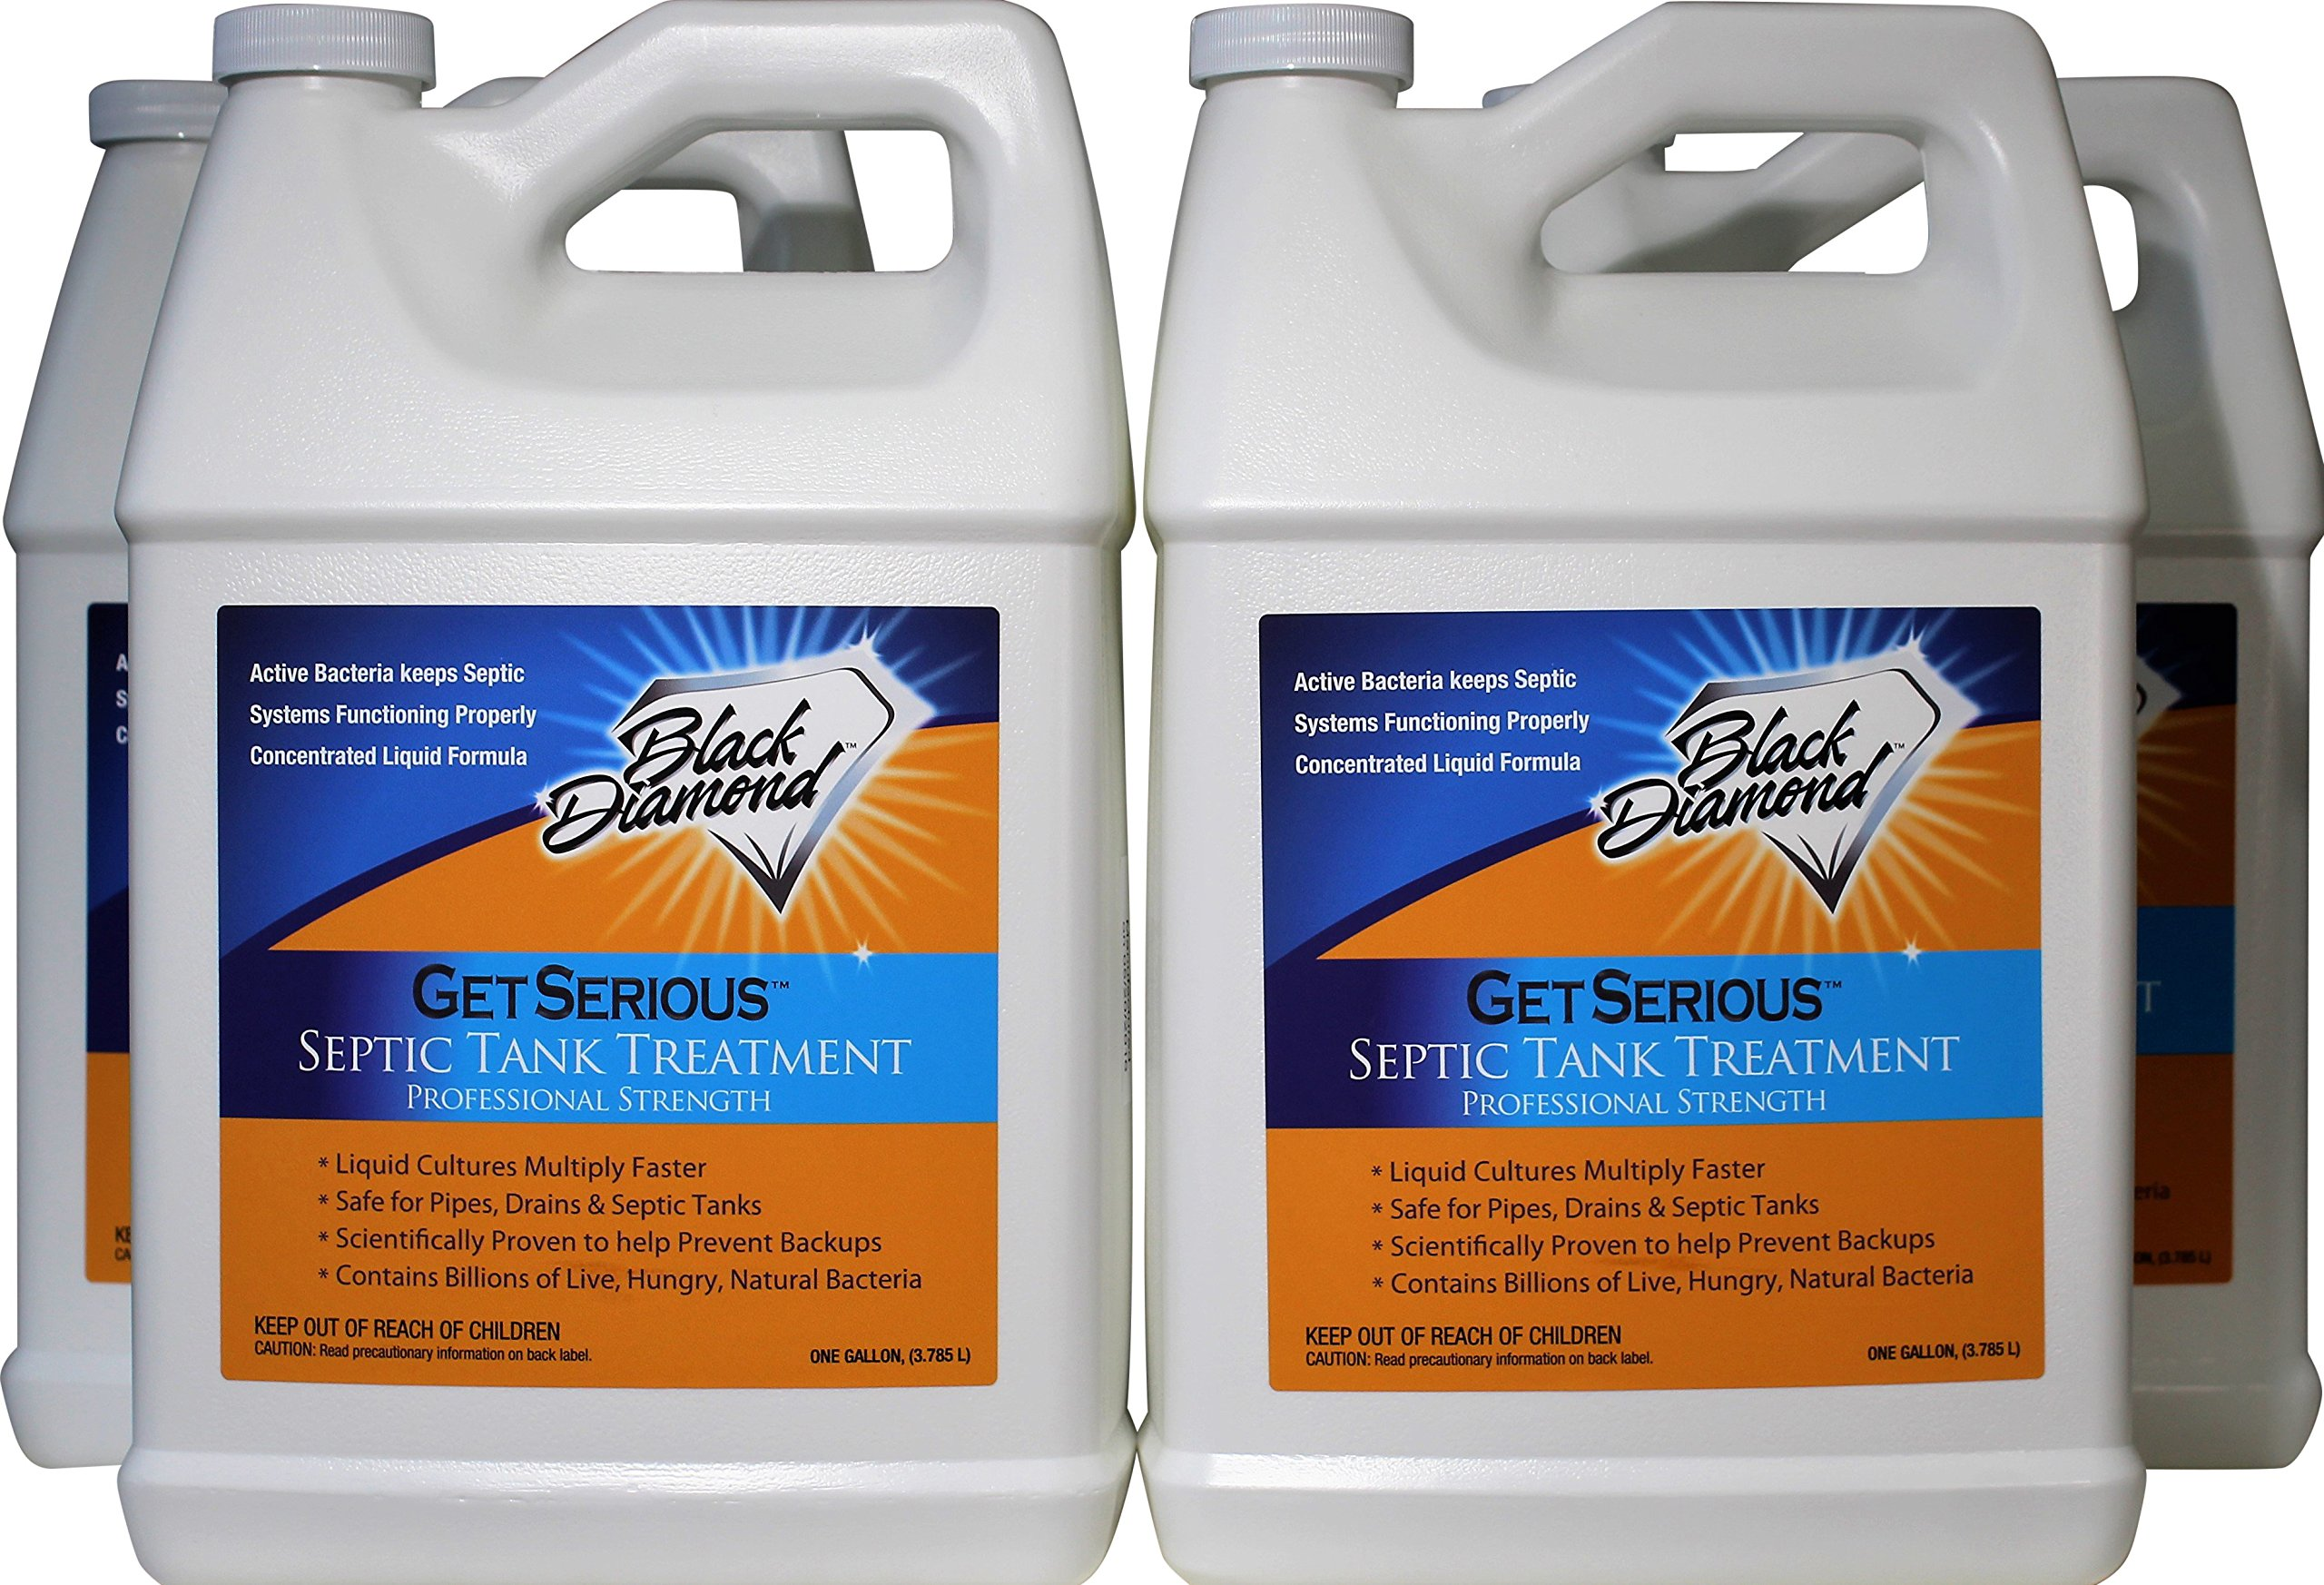 GET SERIOUS Septic Tank Treatment Liquid Natural Enzymes For Residential, Commercial, Industrial, RV's Systems. (4, gallon)